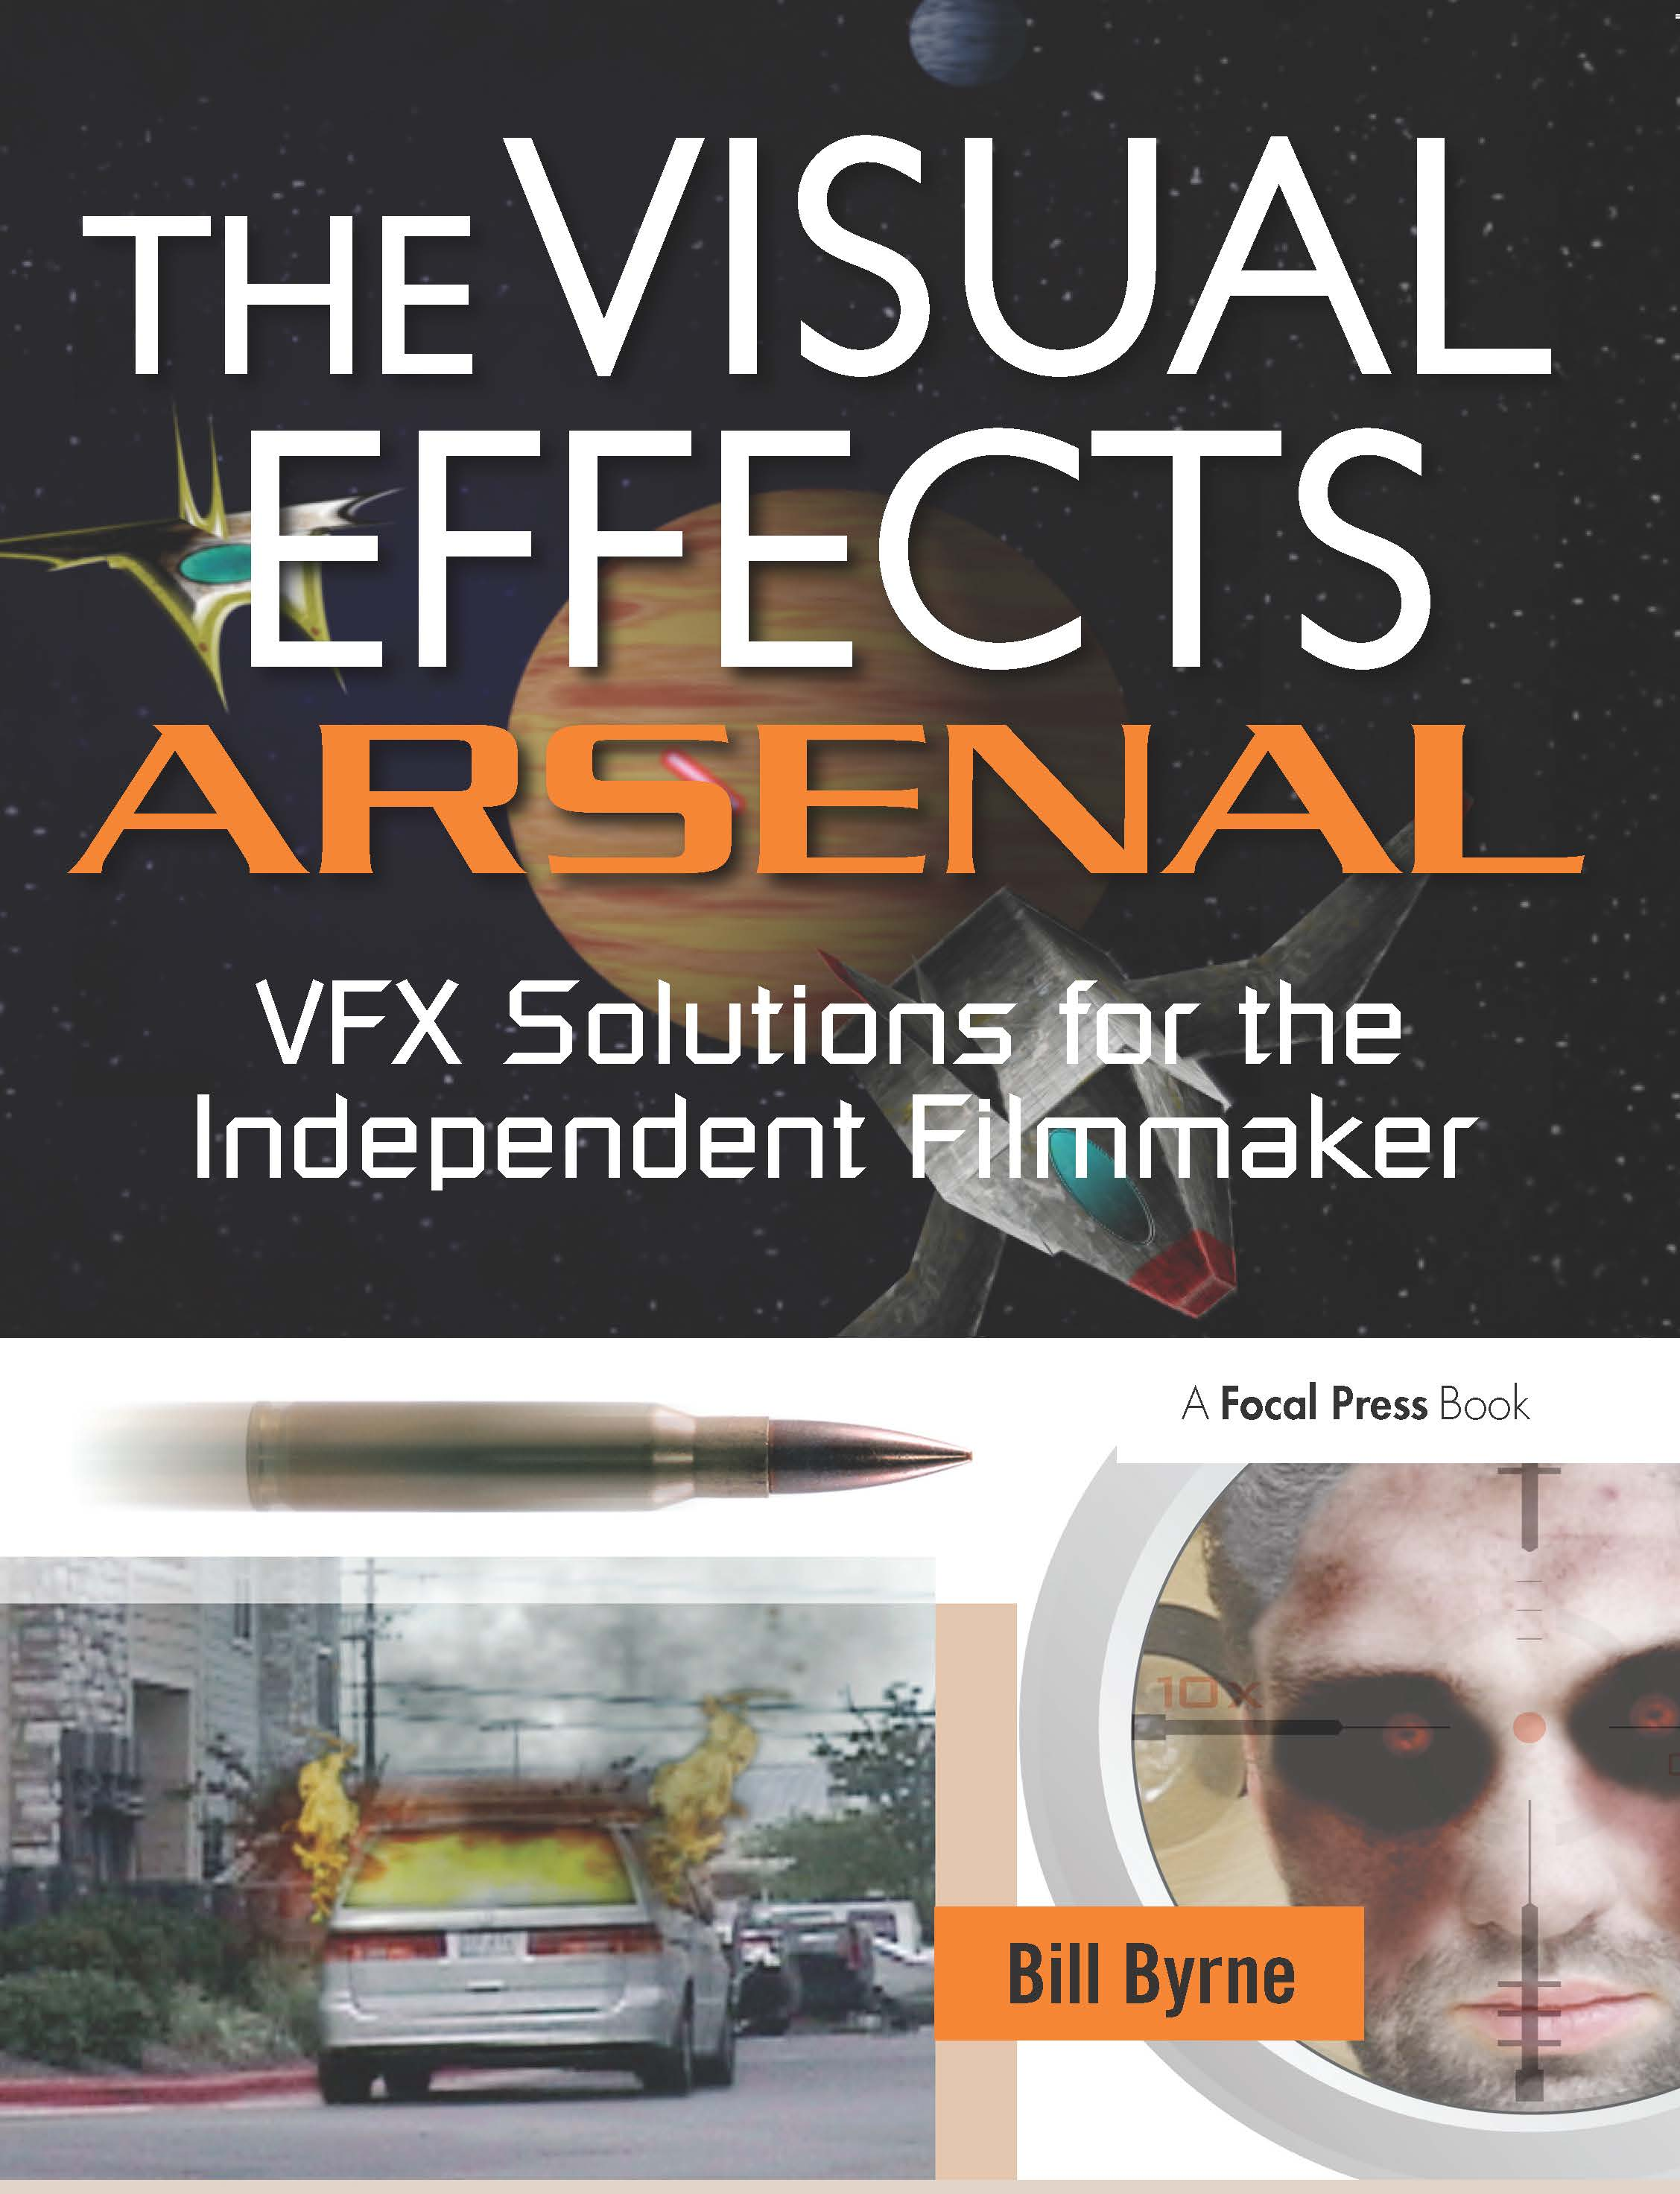 The Visual Effects Arsenal: VFX Solutions for the Independent Filmmaker book cover